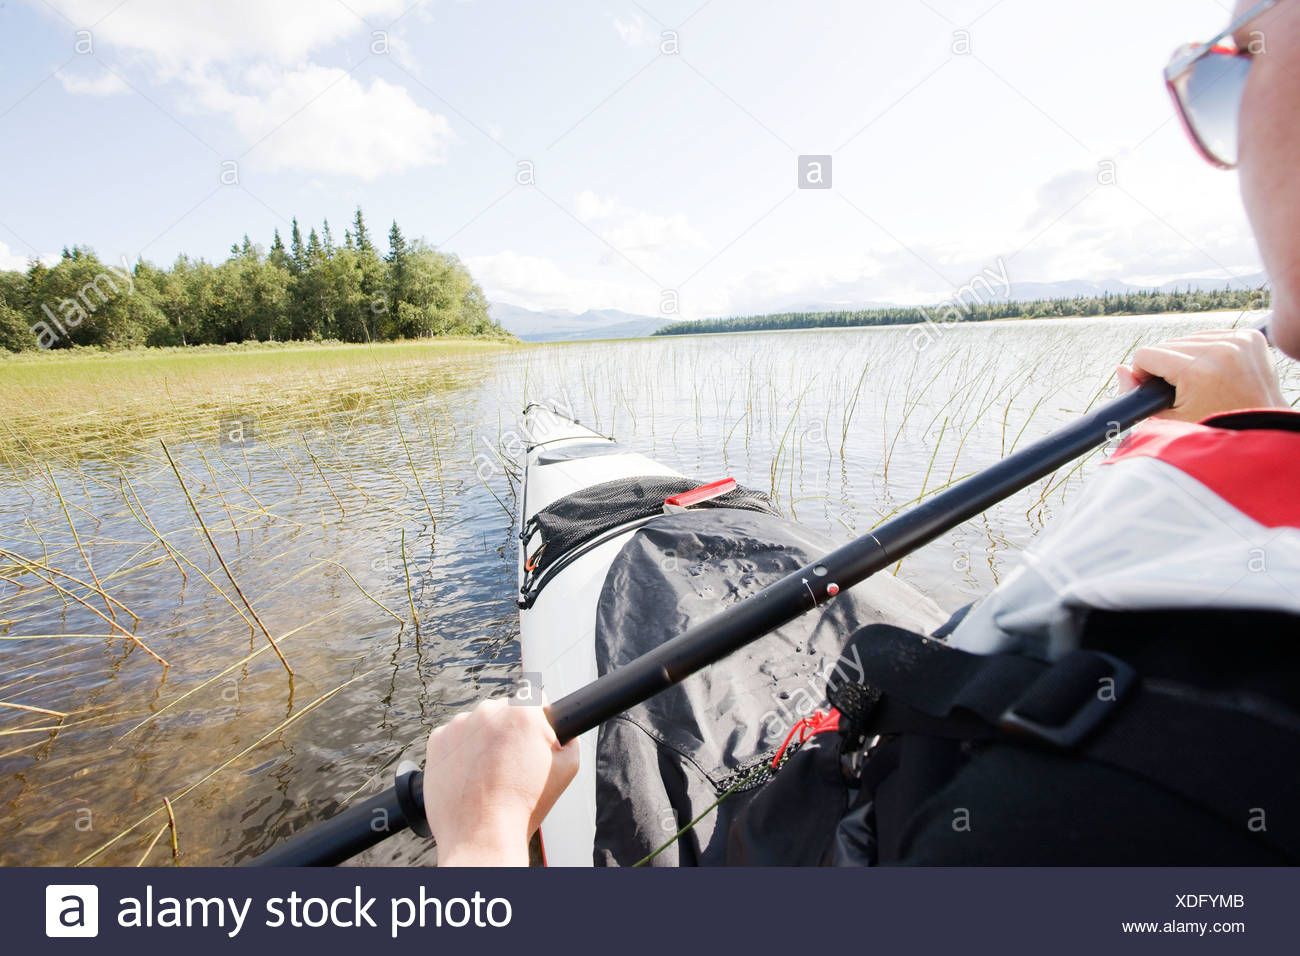 Cropped woman kayaking in the peaceful lake - Stock Image